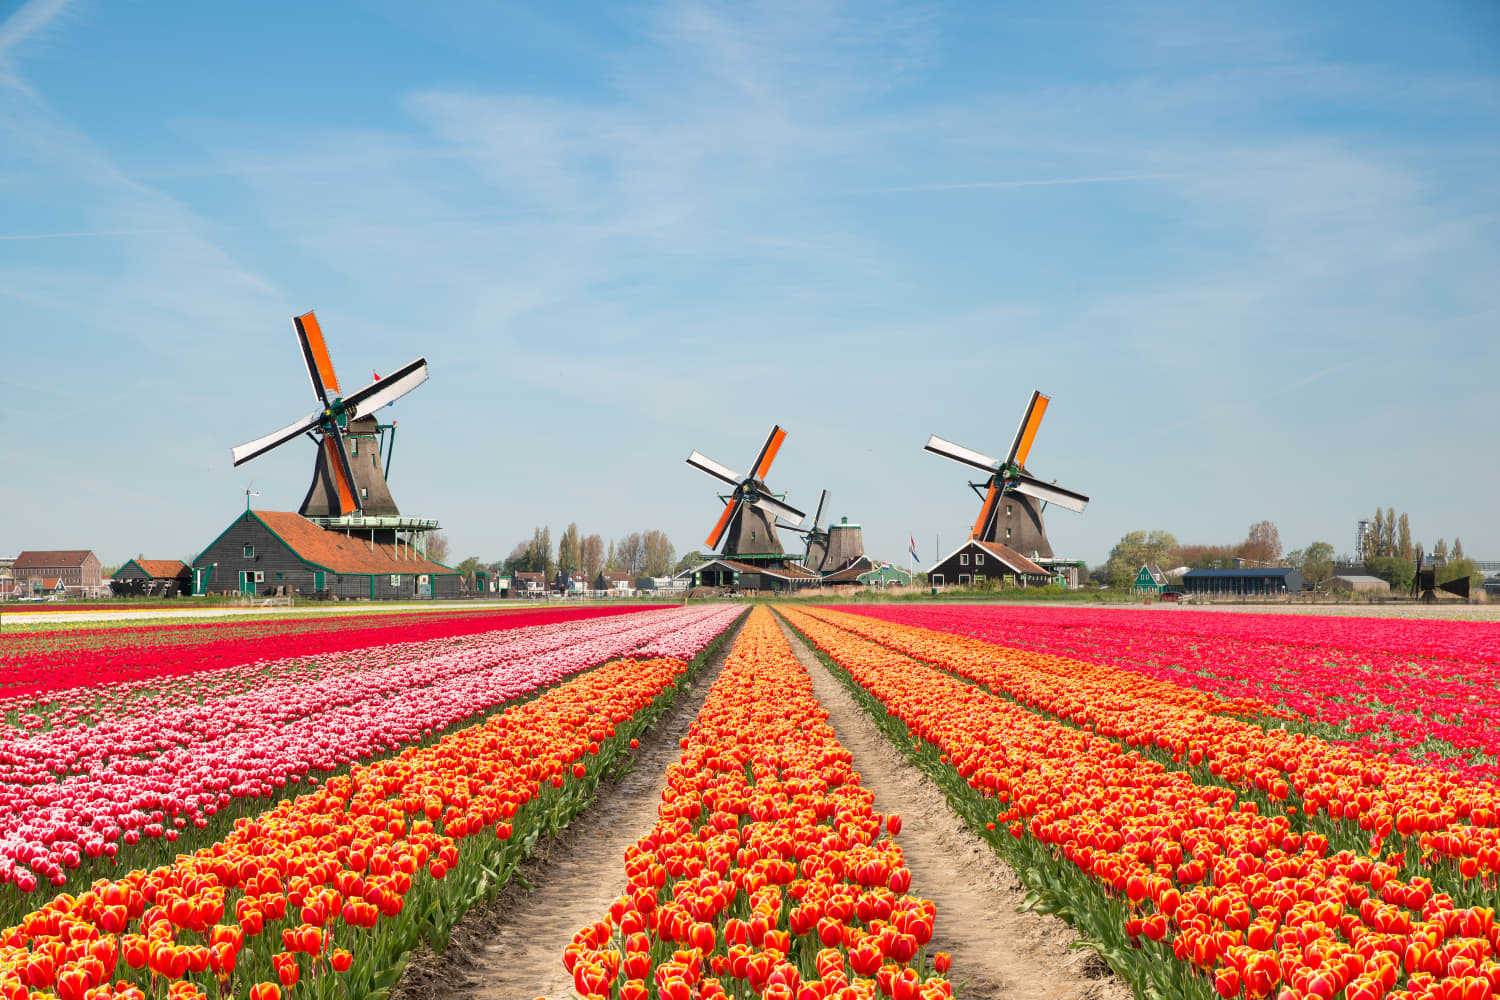 See Holland's Famous Tulips in Bloom on This Virtual Tour of the Keukenhof Gardens